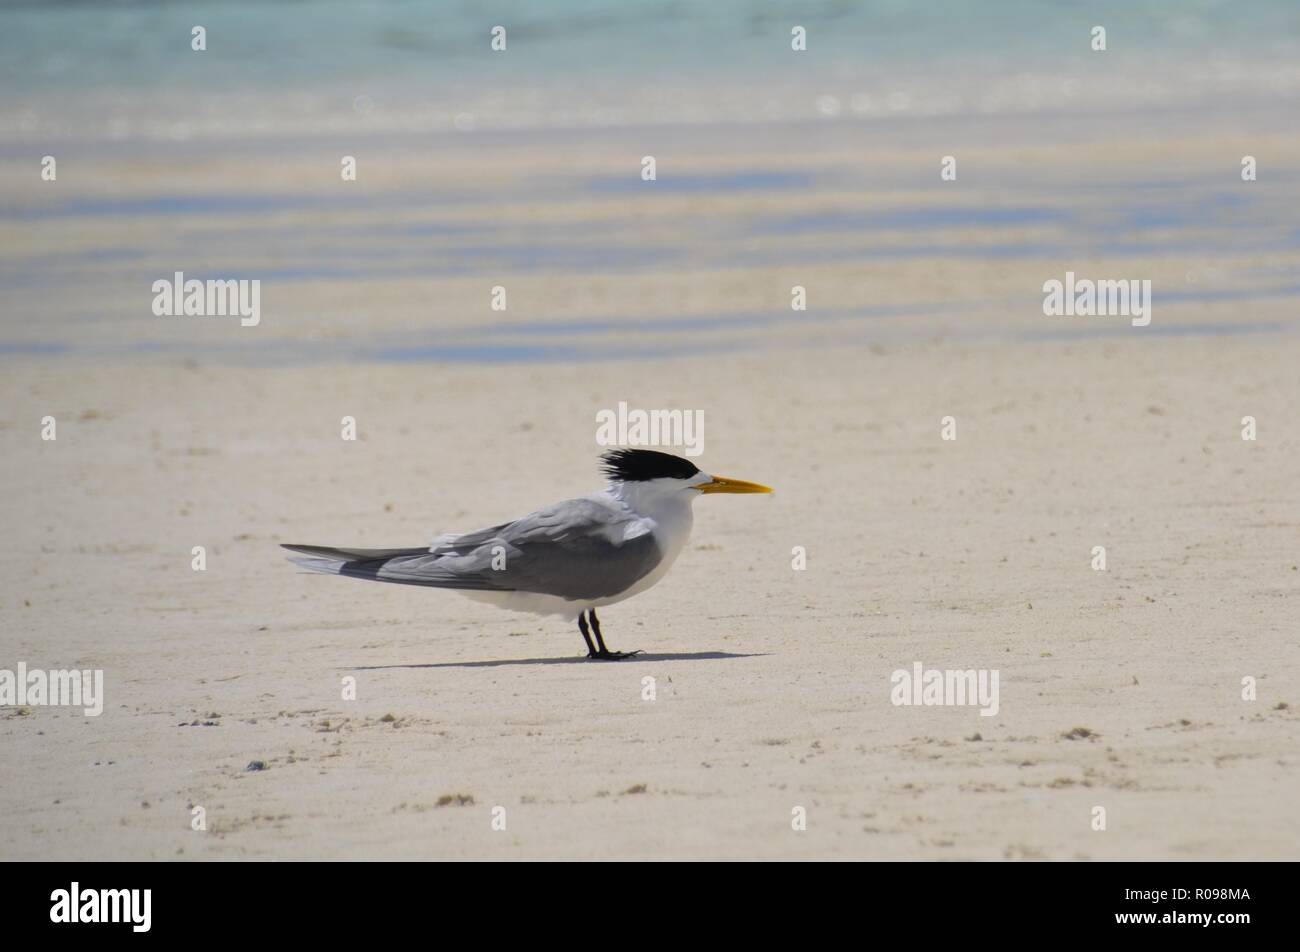 Crested tern sea bird facing the wind on the beach at Heron Island in Australian Great Barrier Reef - Stock Image